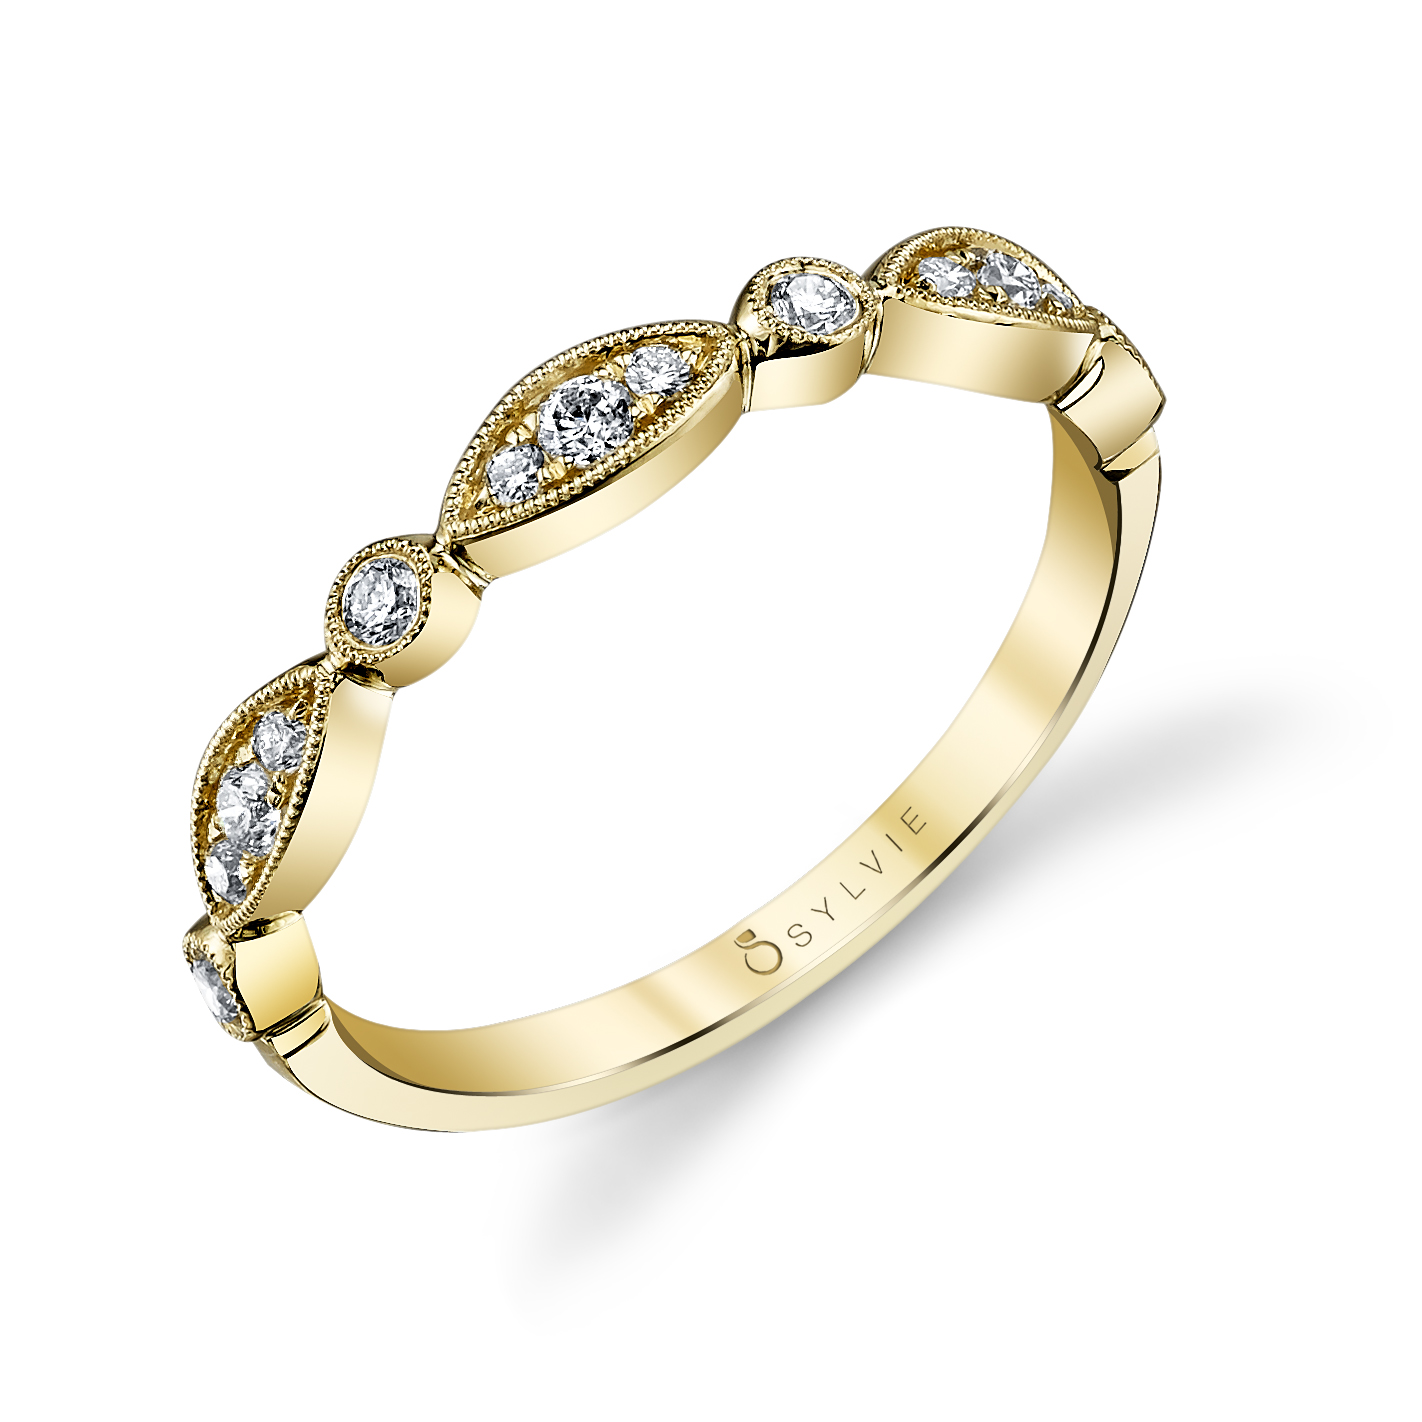 Talia – Vintage Inspired Stackable Wedding Band